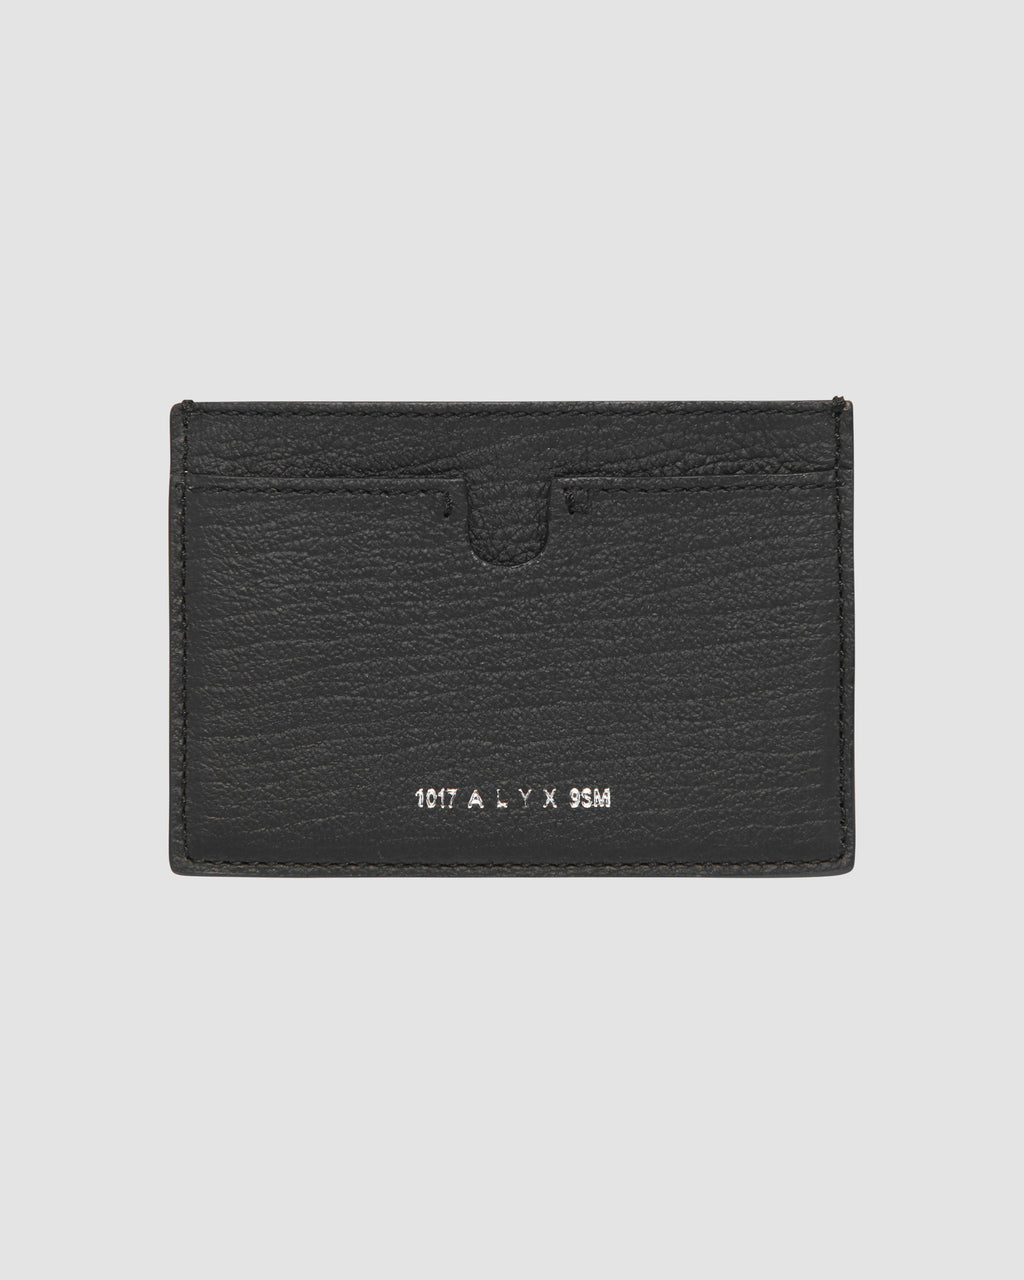 1017 ALYX 9SM | RYAN CARD HOLDER | Wallet | Accessories, Black, F19, Man, Wallet, Woman